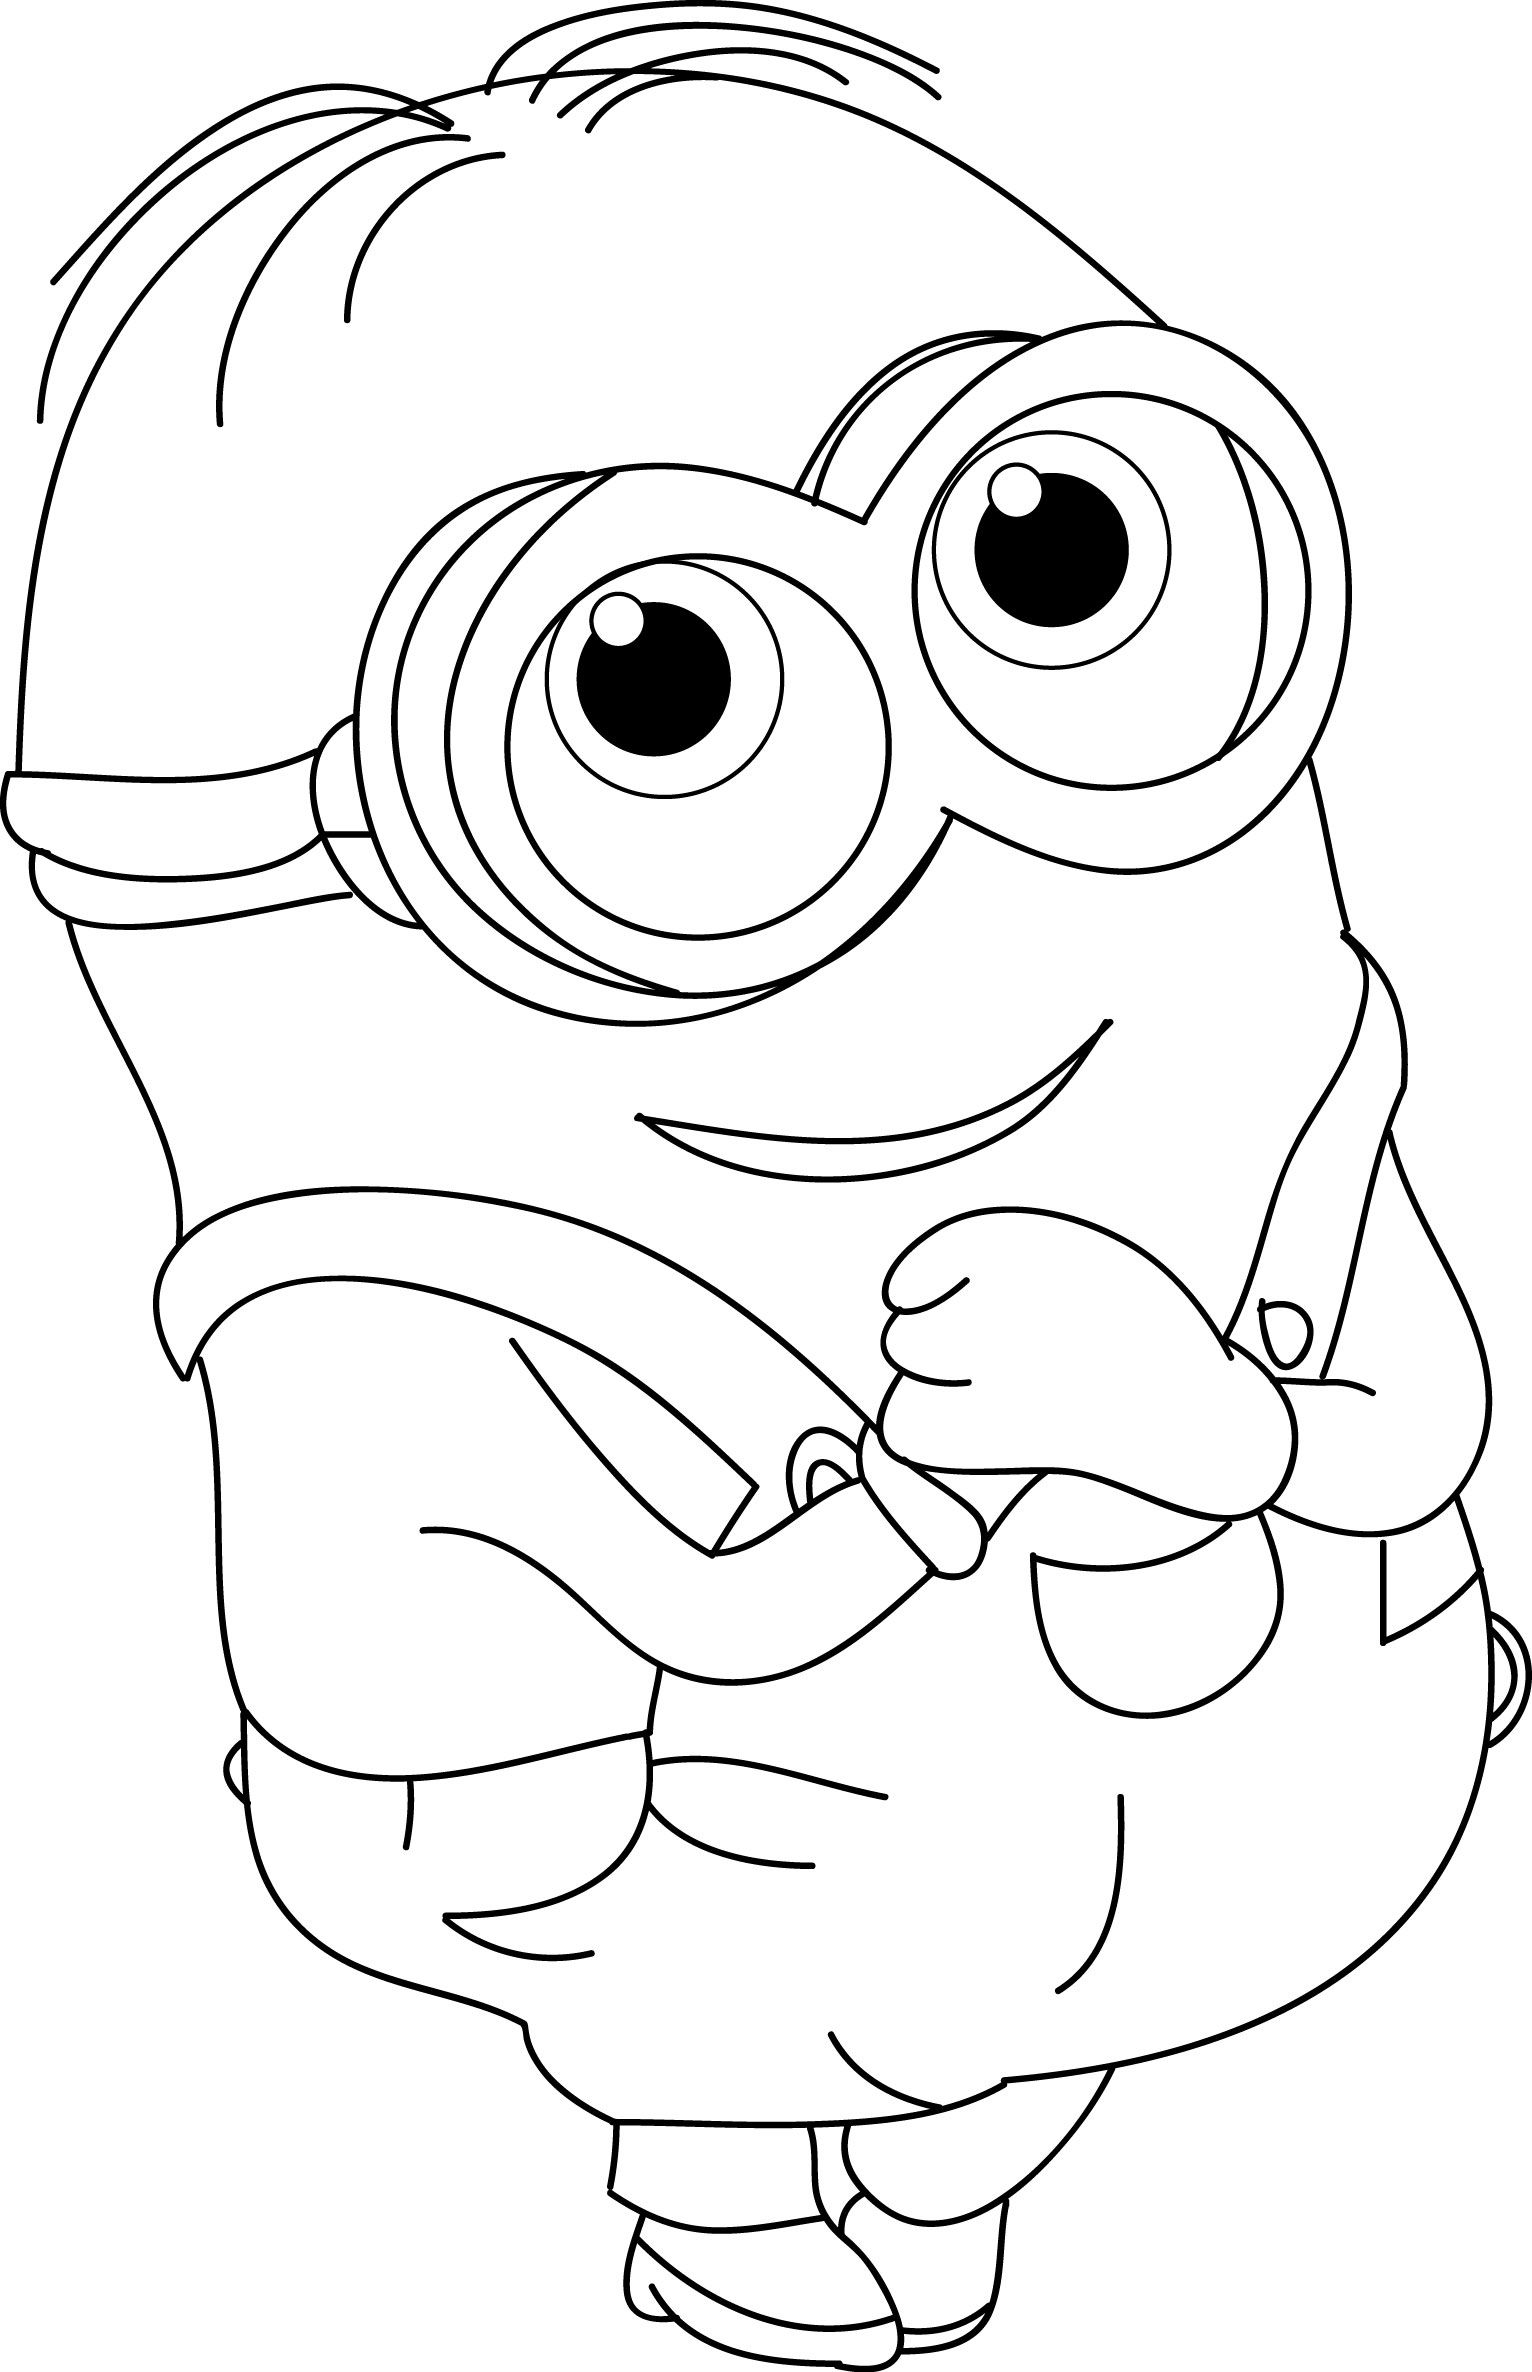 coloring pictures of cute animals minion Google Search